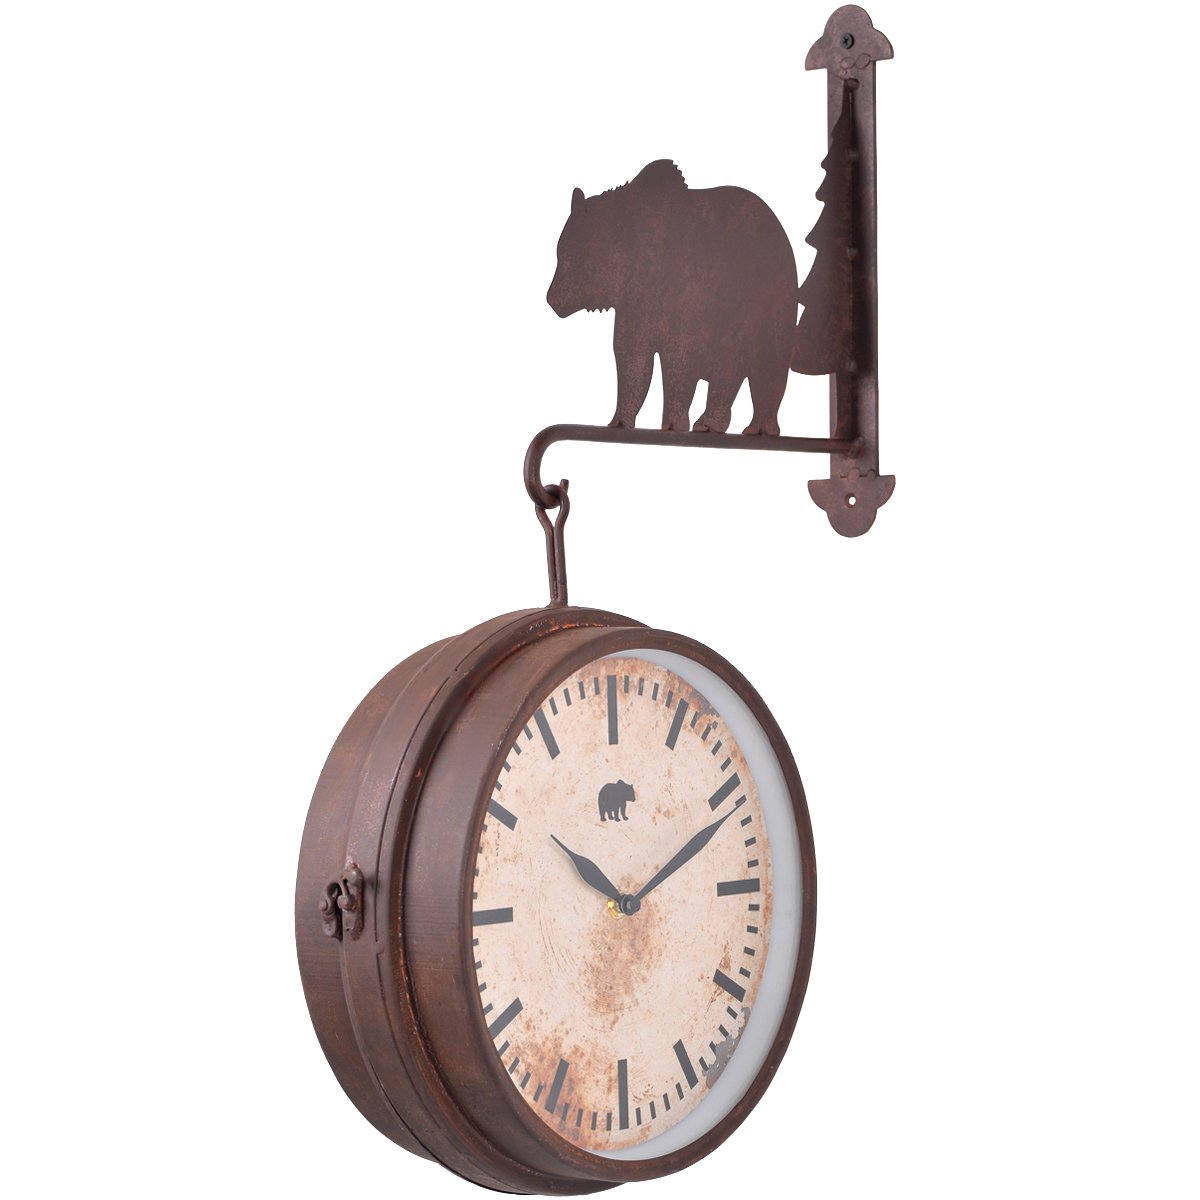 22.83 x 4.13 x 14.37 Inches NIKKY HOME Bear for Cabin Decor Wall Hanging Clock Rustic Brown CBPFX892WTD